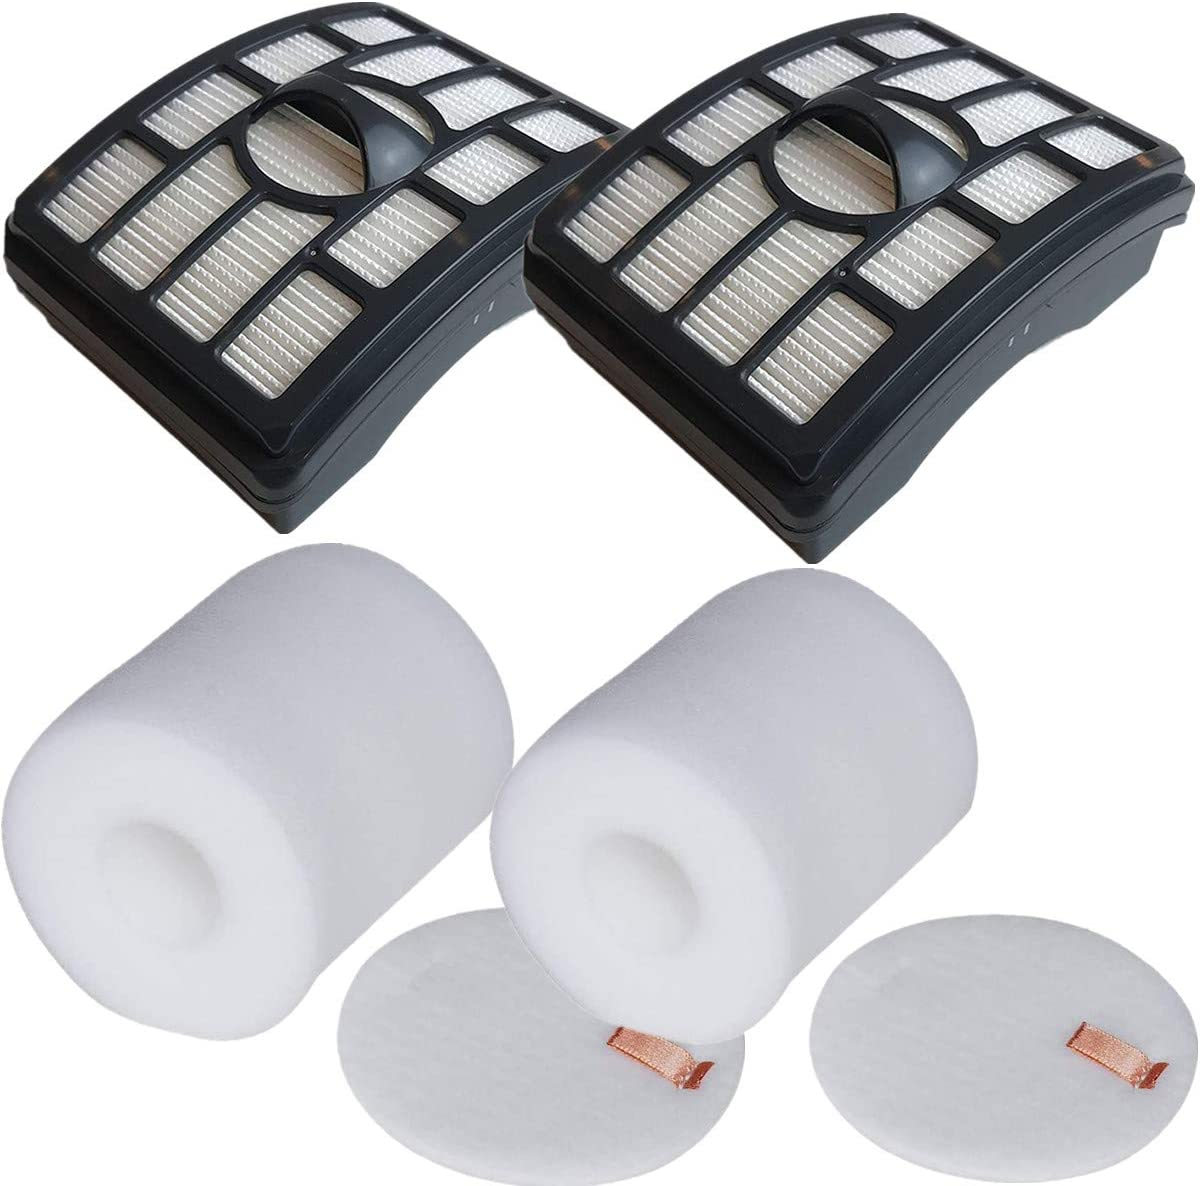 LLHome 2 Pack Hepa Filters for Shark Rotator Pro Lift-Away NV500 NV501 NV502 NV503 NV505 NV510 NV520 NV552 NV640 NV642 UV560 Vacuum. Replace Parts # XHF500 & XFF500